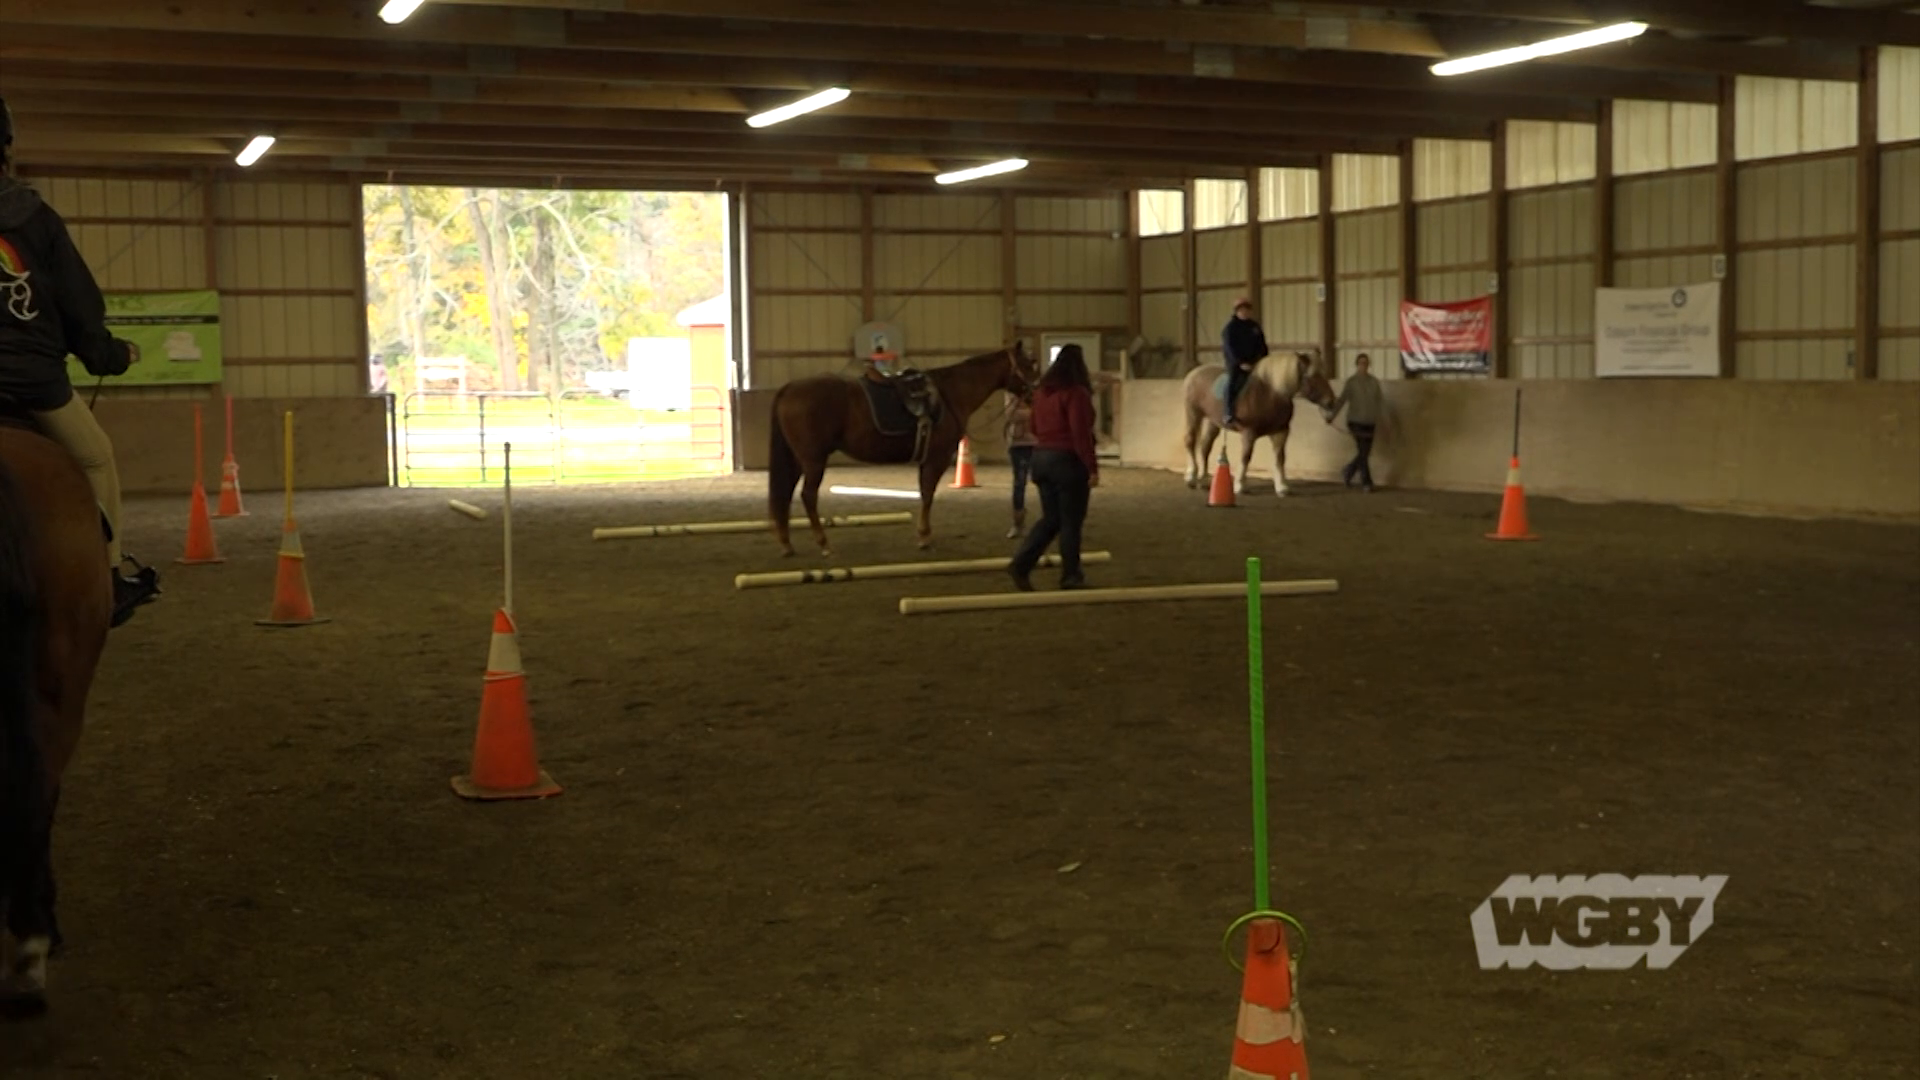 Since 1982, the Therapeutic Equestrian Center in Holyoke has made horseback riding available to individuals with disabilities.